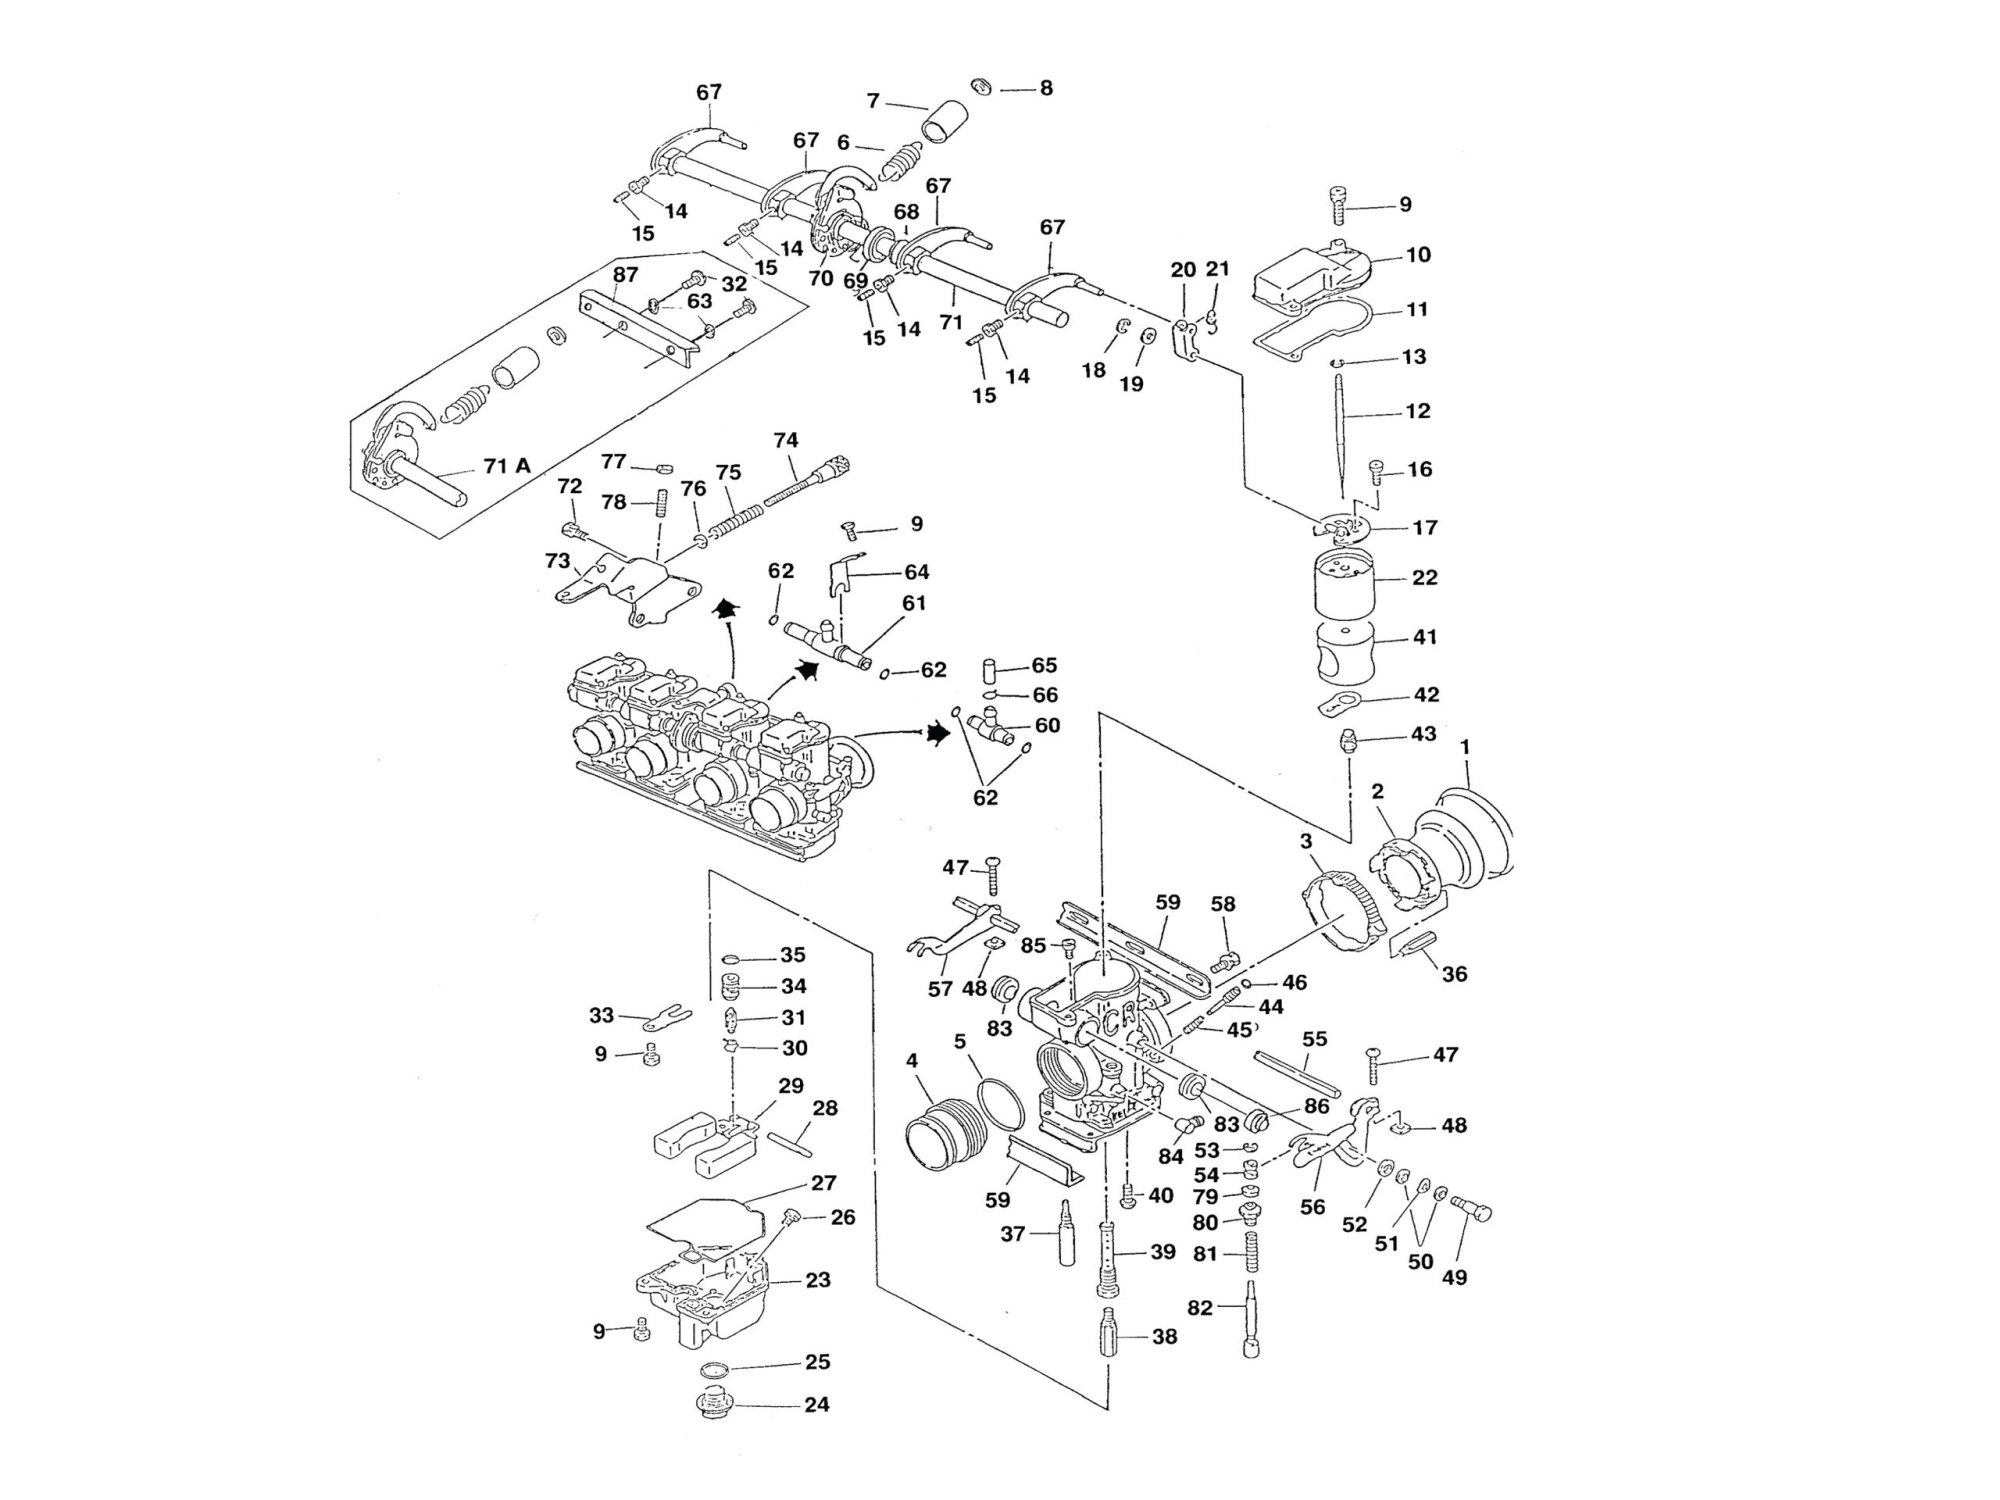 hight resolution of evo x engine diagram get free image about wiring diagram 1998 mitsubishi eclipse parts diagrams mitsubishi